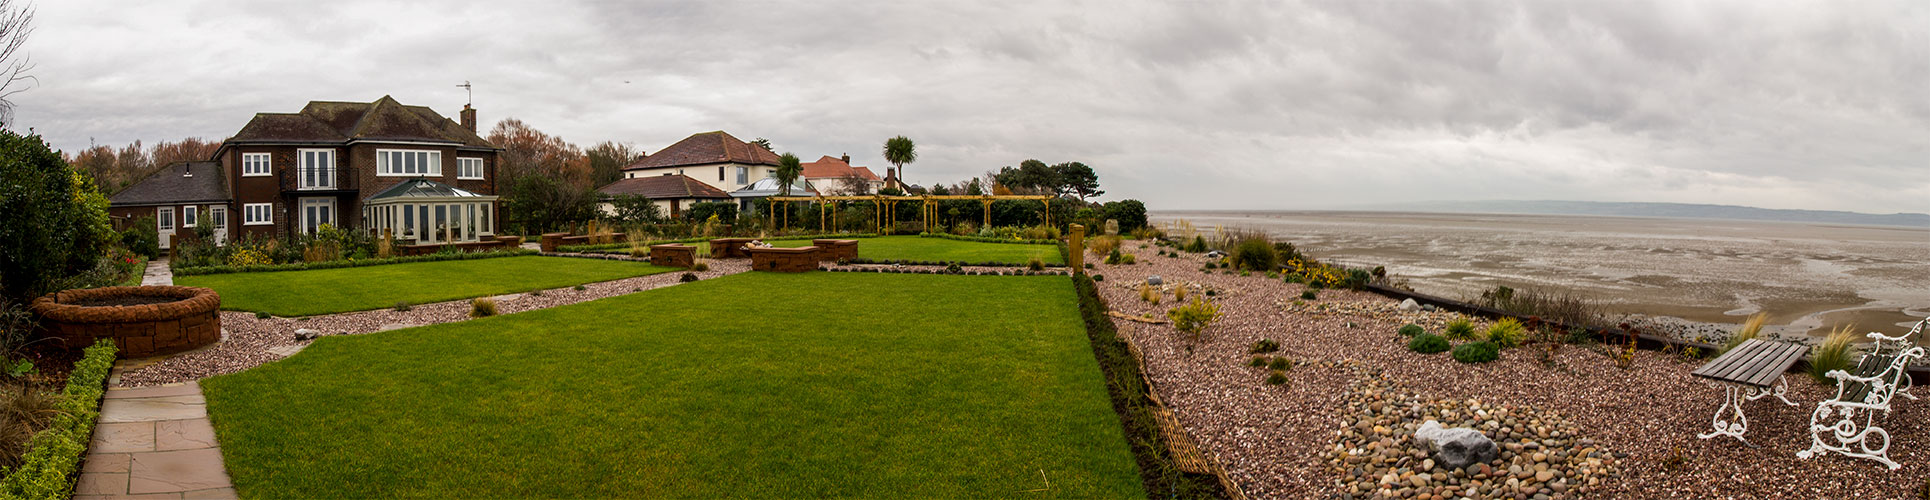 Panoramic image of Evolution garden room installation to capture the stunning views of the North Wales coastline.